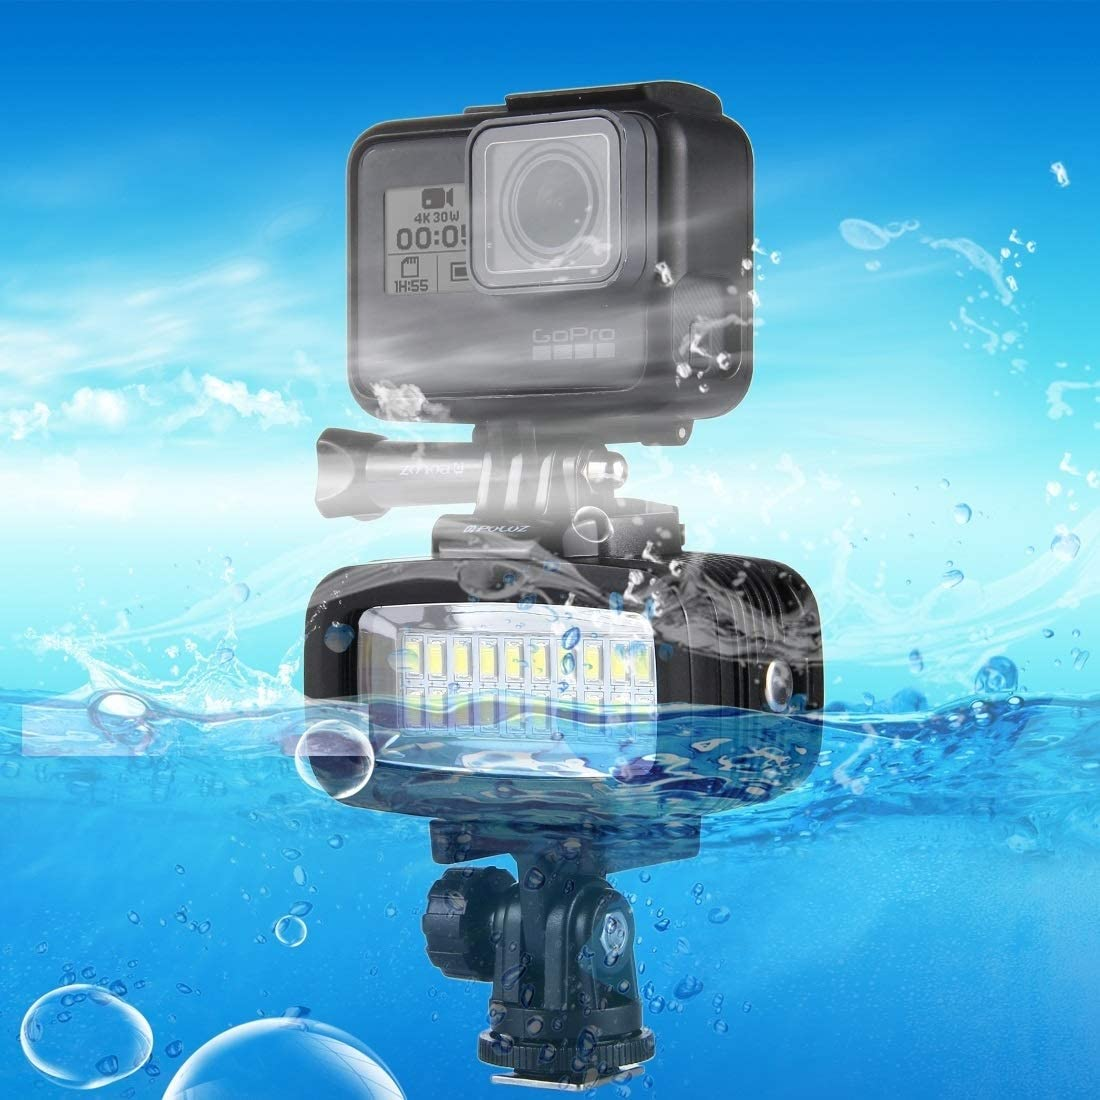 JINUS 20 LEDs 40m Waterproof IPX8 Studio Light Video /& Photo Light with Hot Shoe Base Adapter /& Quick Release Buckle /& Long Screw /& 2 x Filter Plates for GoPro HERO5 //4//3 //2//1